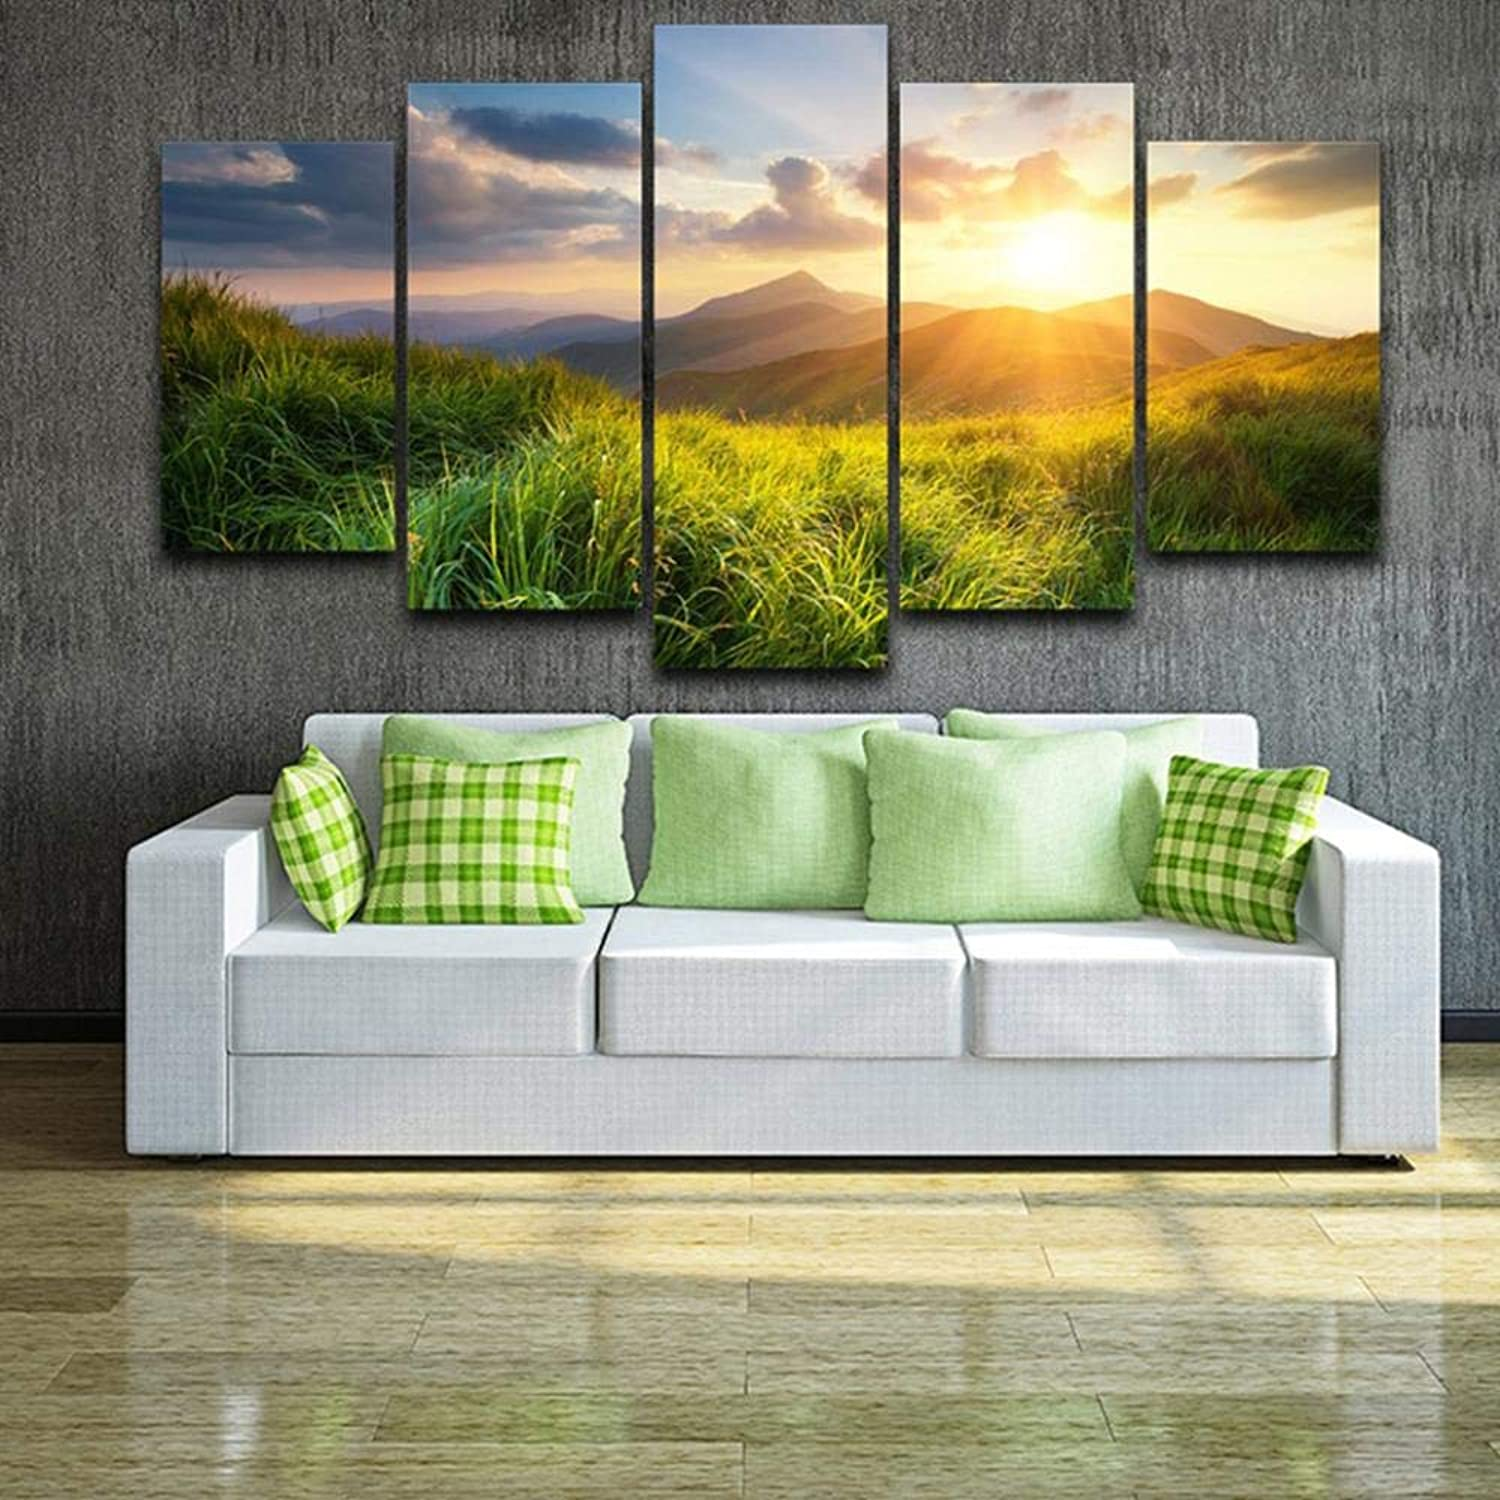 Envío rápido y el mejor servicio QIFUHUA Impresión en Lienzo Pintura Decoración para para para el hogar 5 Piezas Mountain Valley Prairie During Sunset Nature Scenery Poster Modular Wall Art Pictures, Marco, 20x35 20x45 20x55cm  alto descuento